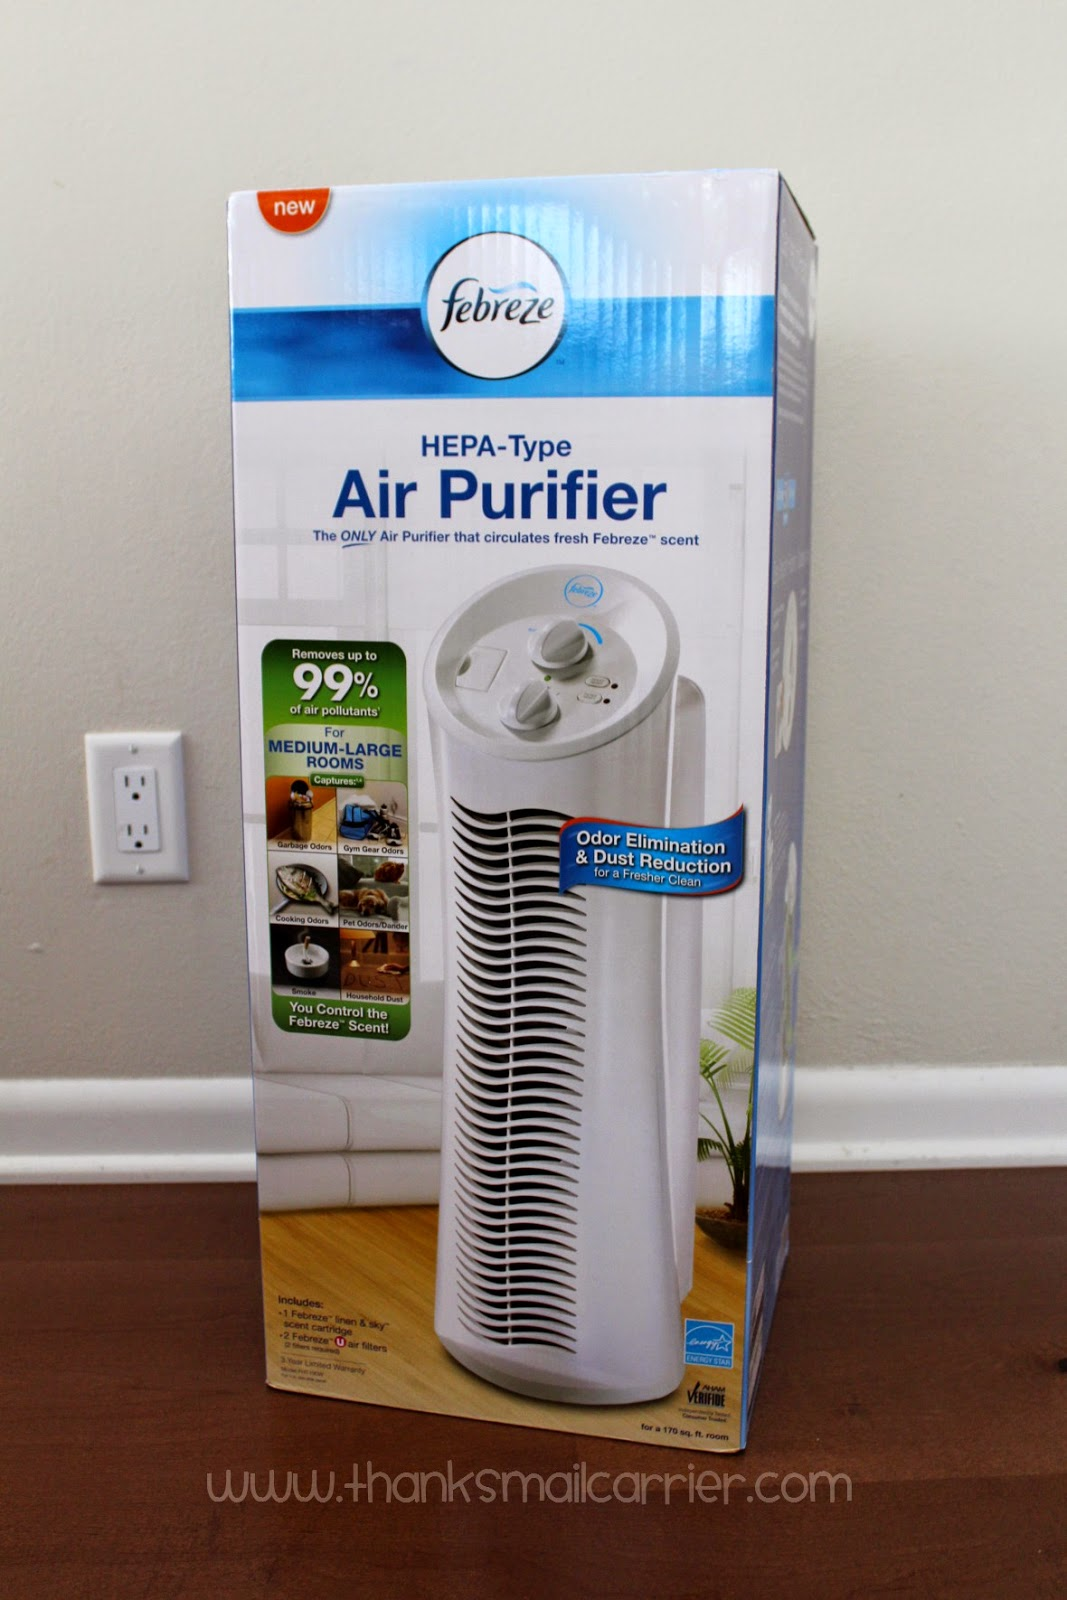 Febreze HEPA-type Air Purifier